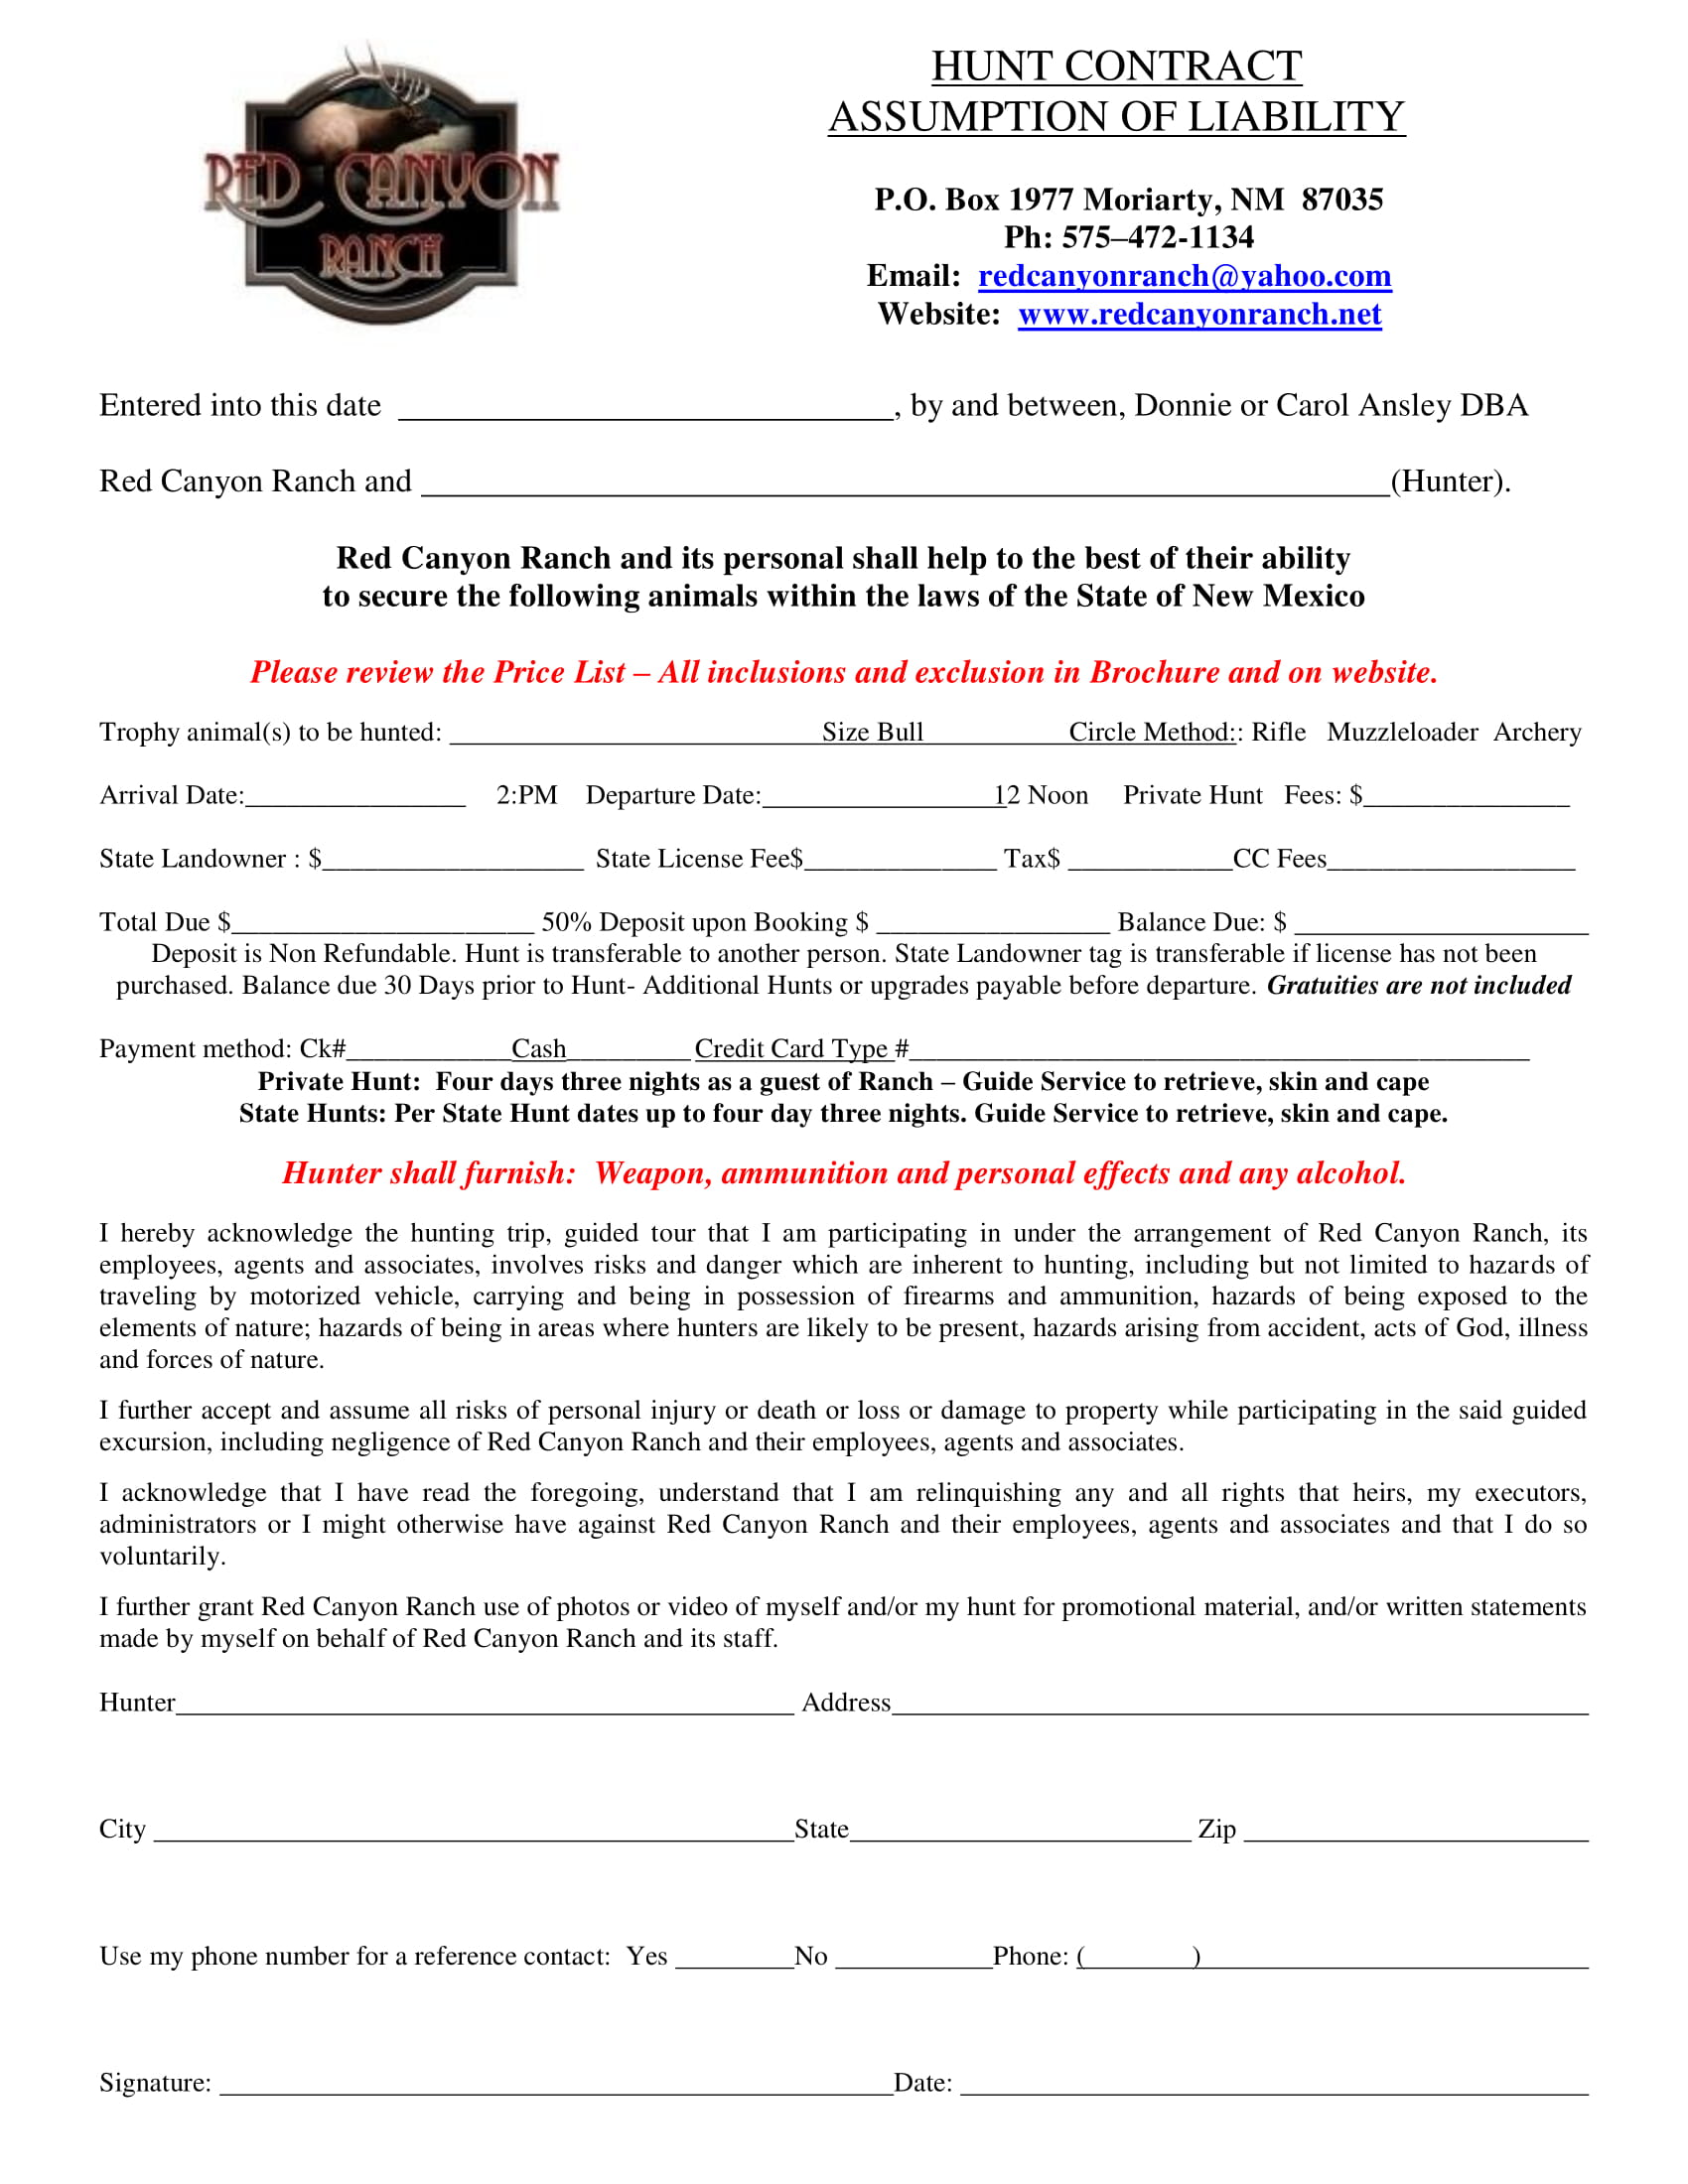 hunt contract assumption of liability form 1